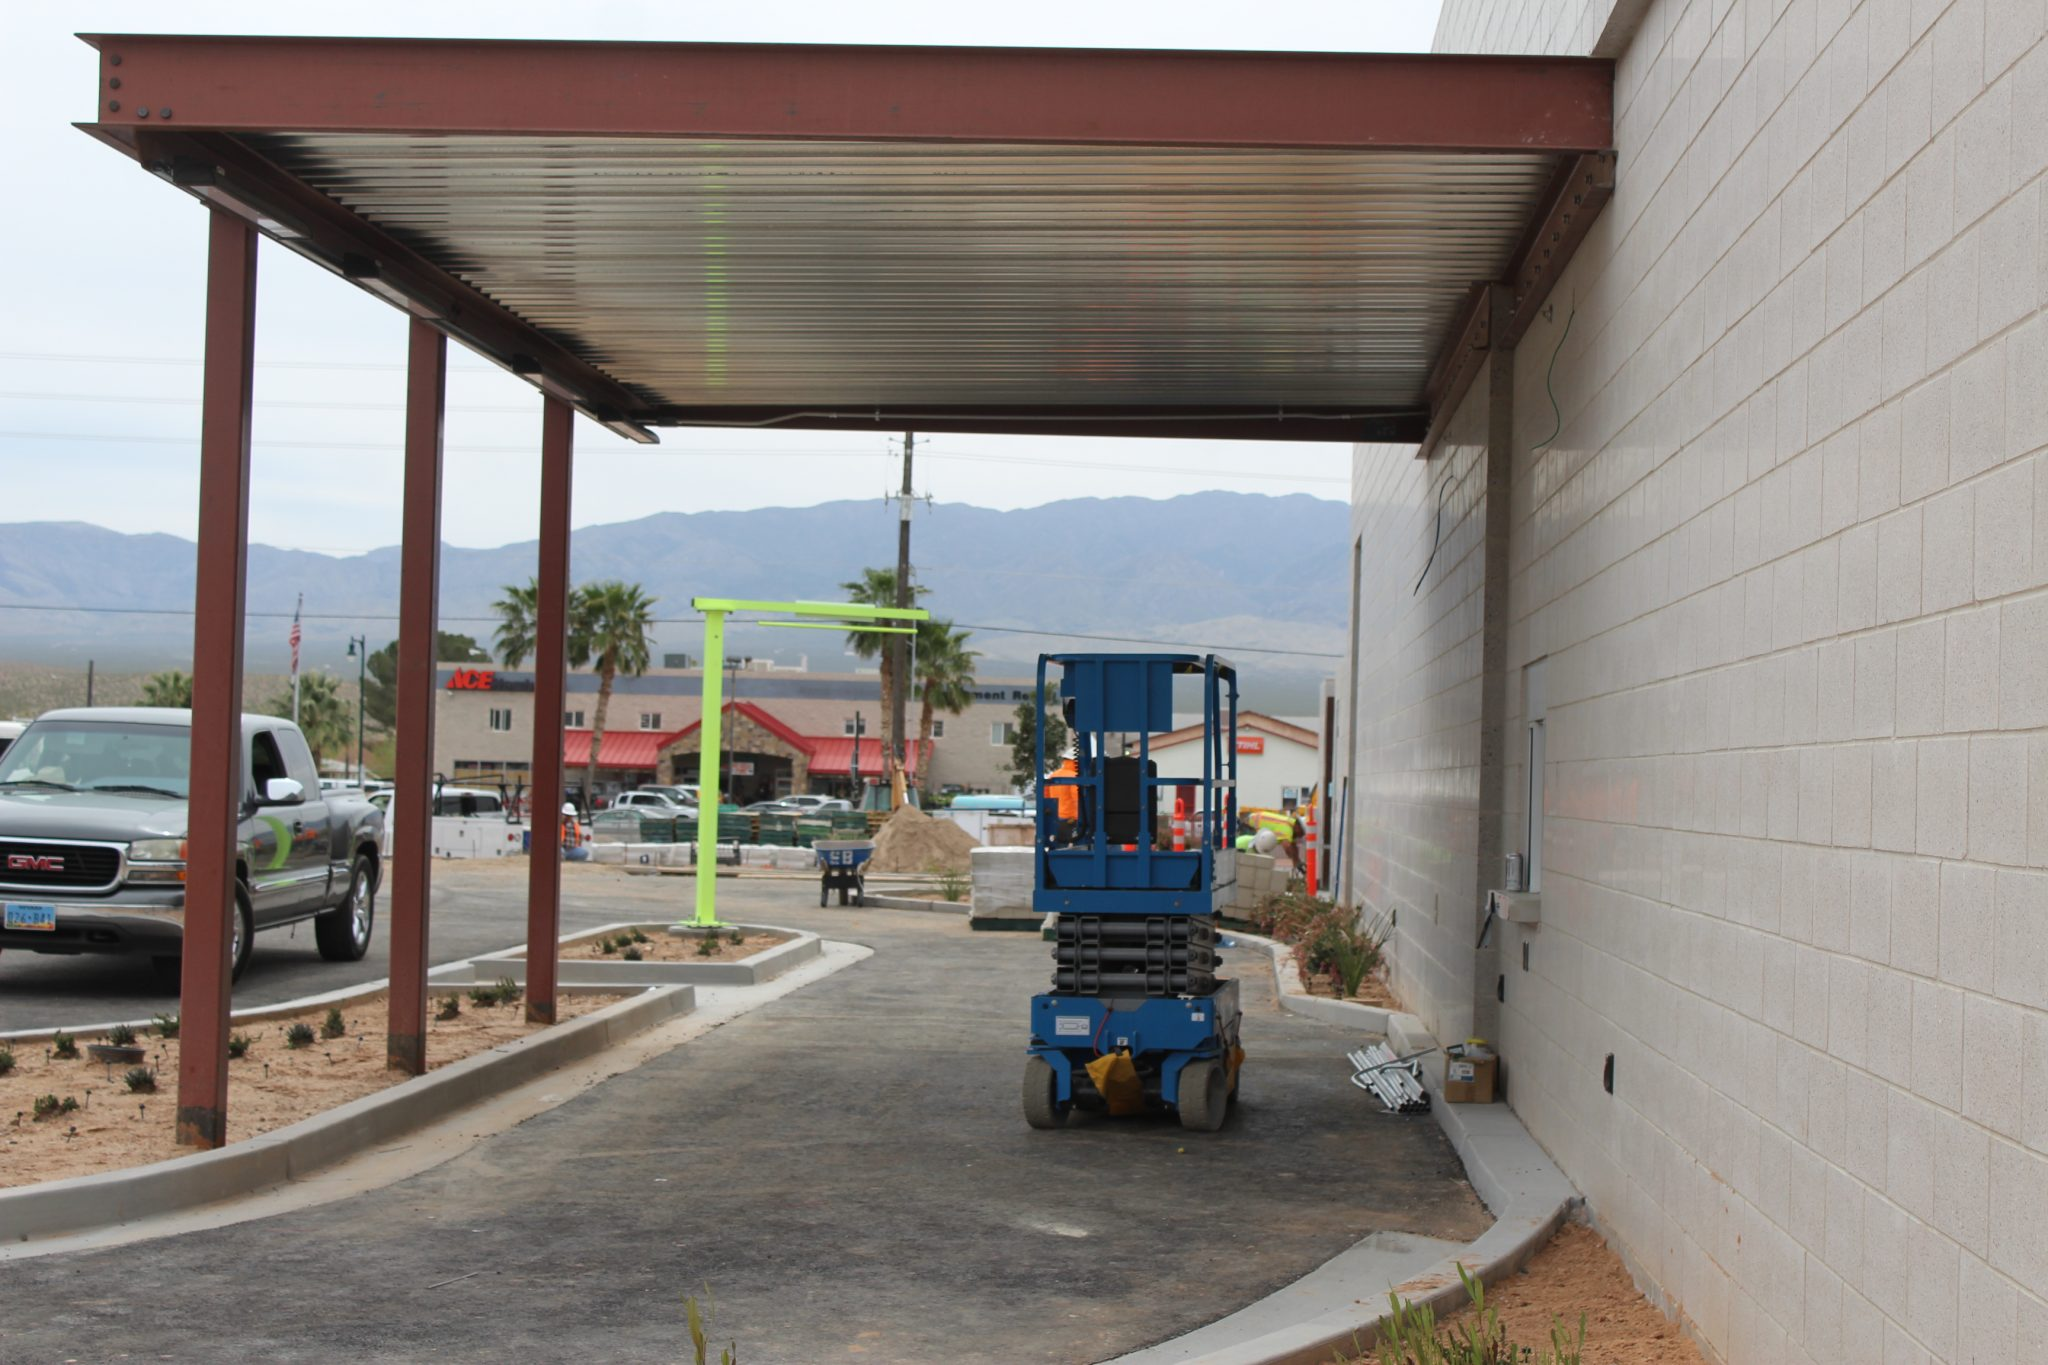 New Library slated to open May 31